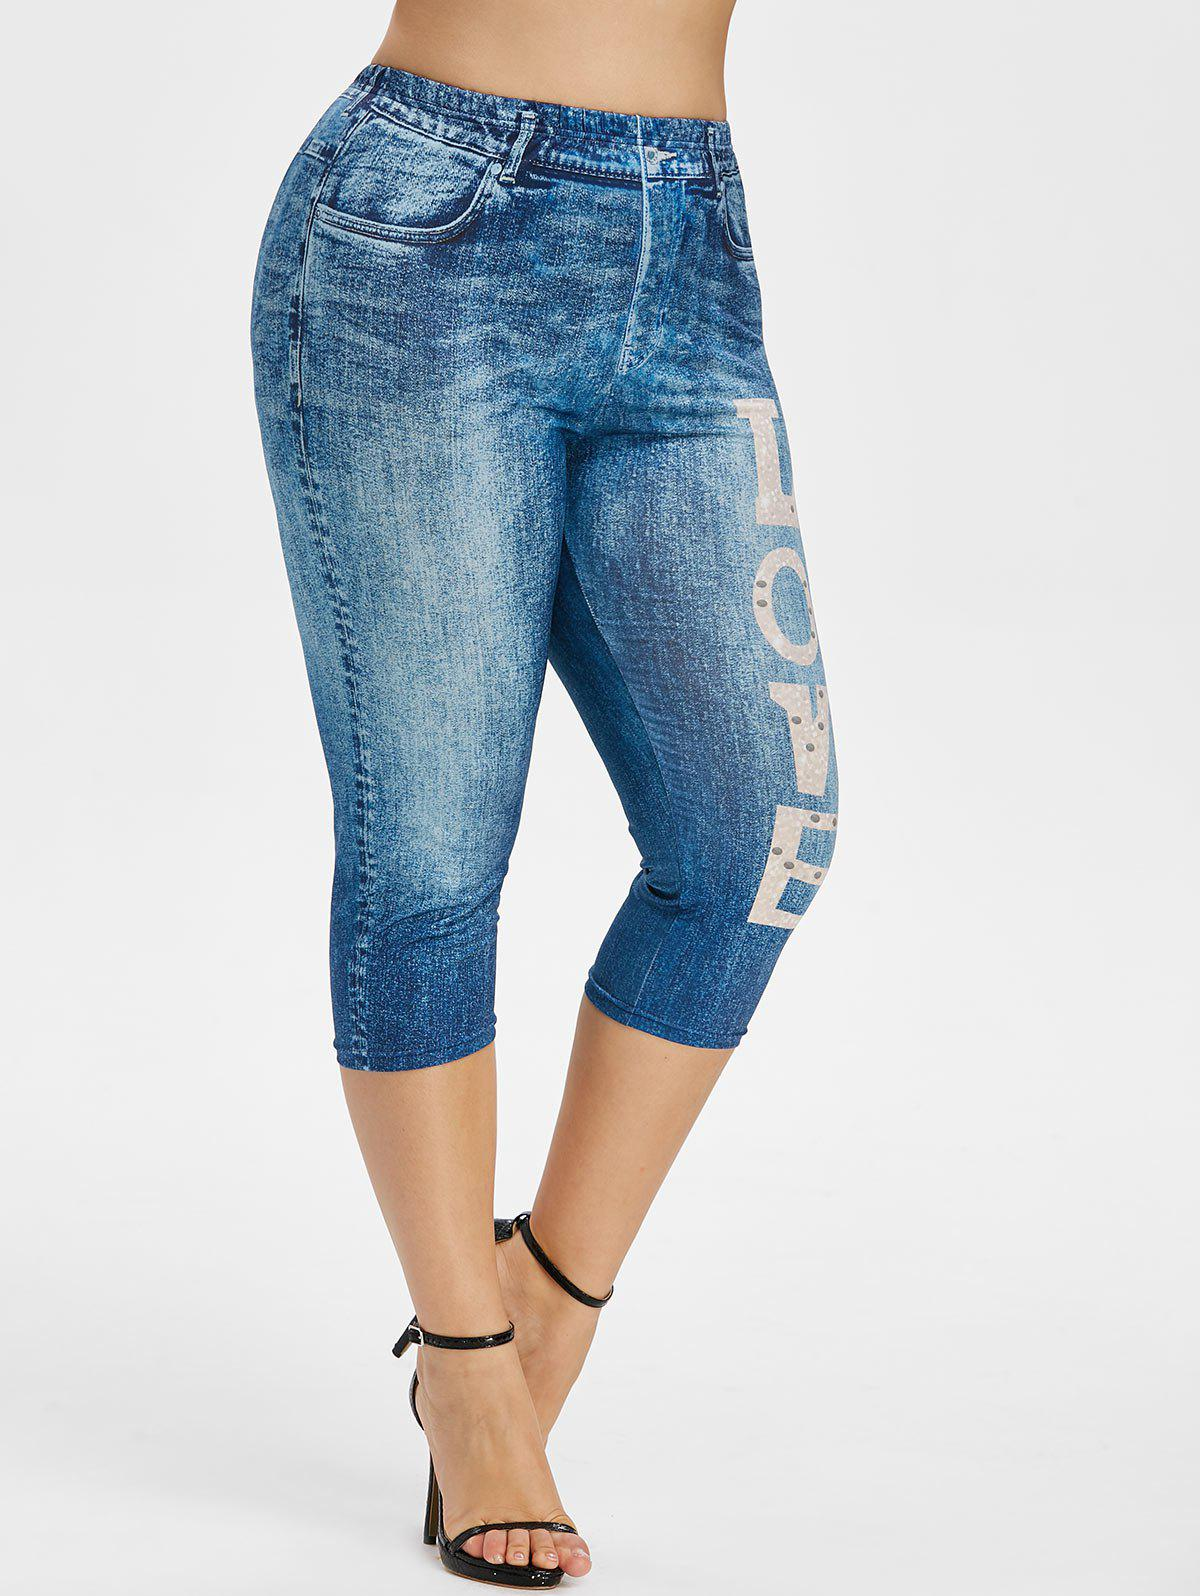 Plus Size 3D Jean Print Graphic Cropped Leggings - DENIM DARK BLUE 2X